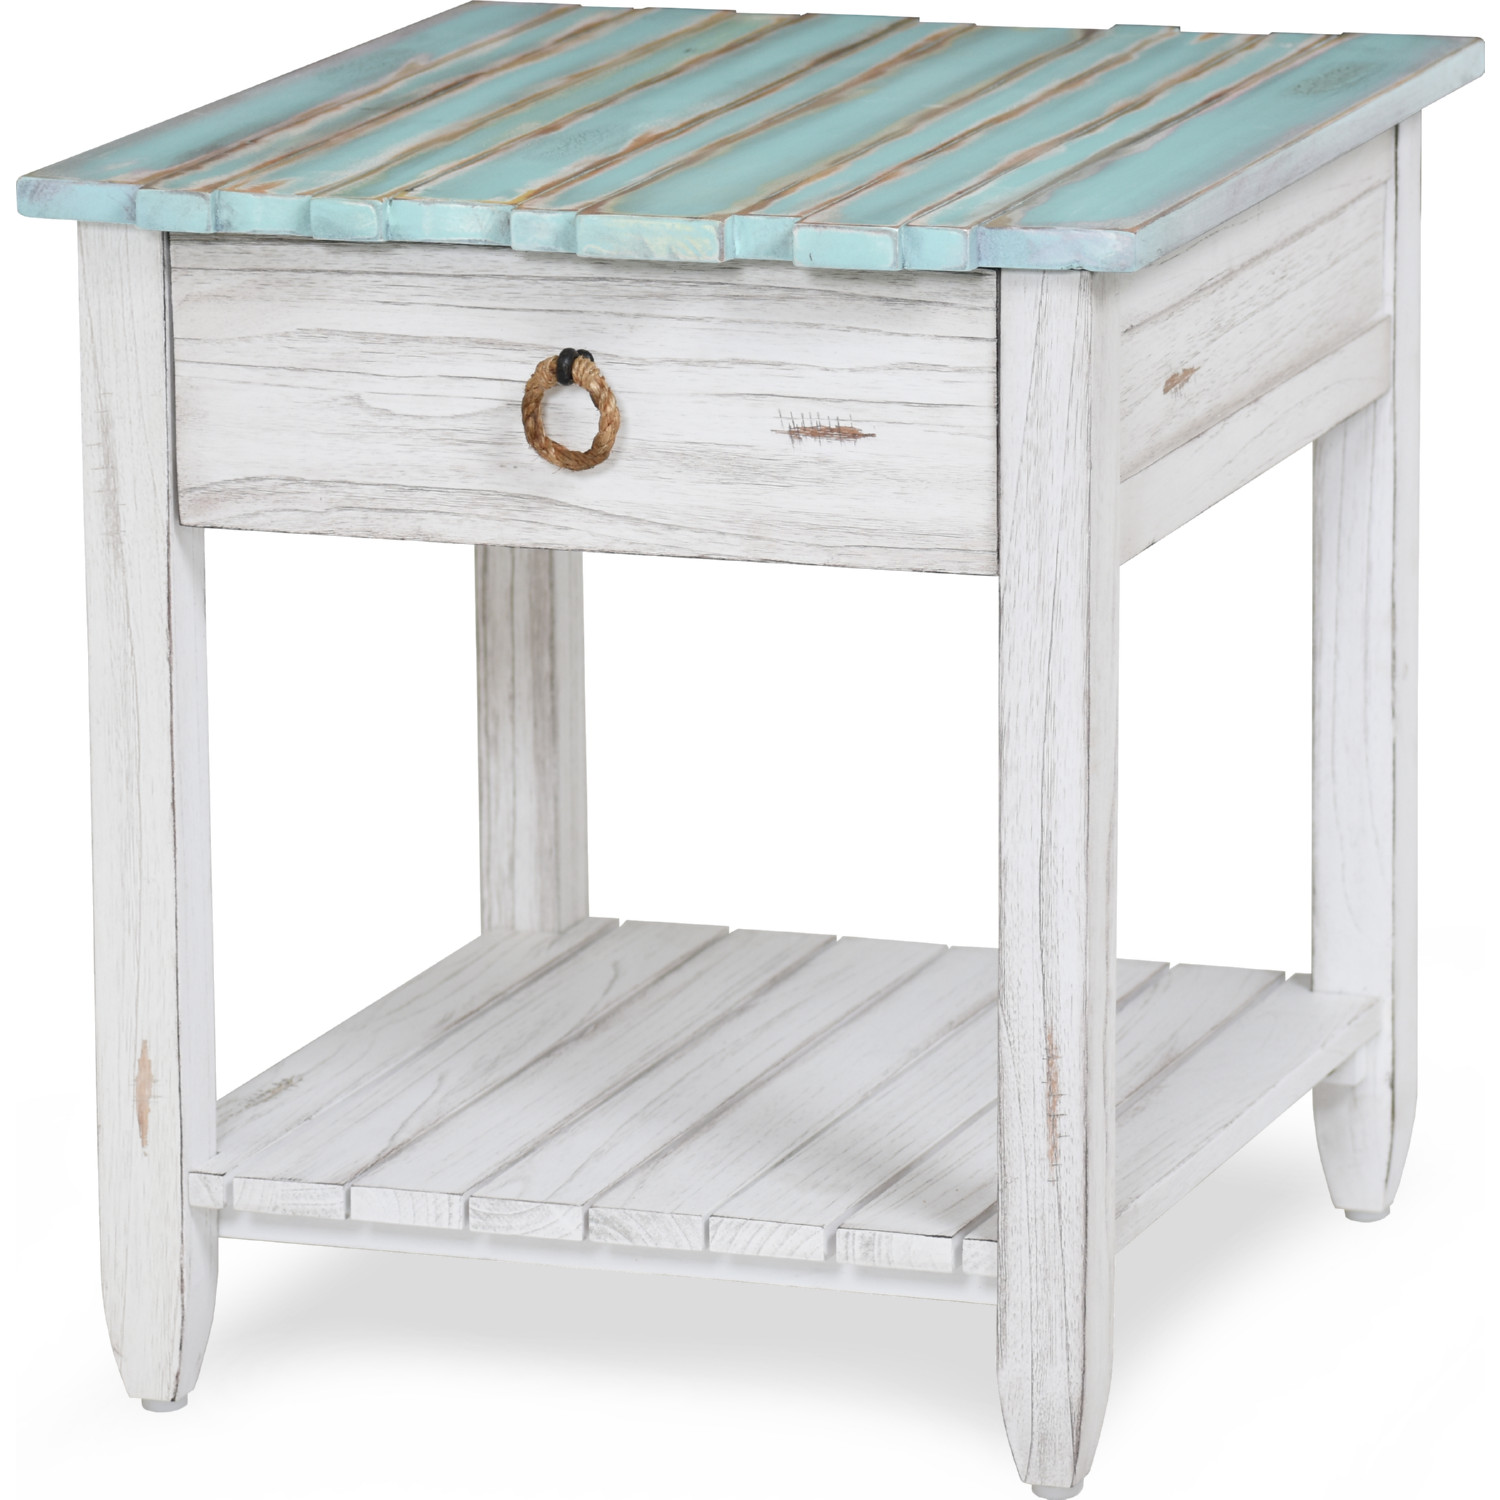 Picket Fence End Table In Distressed Blue White By Sea Winds